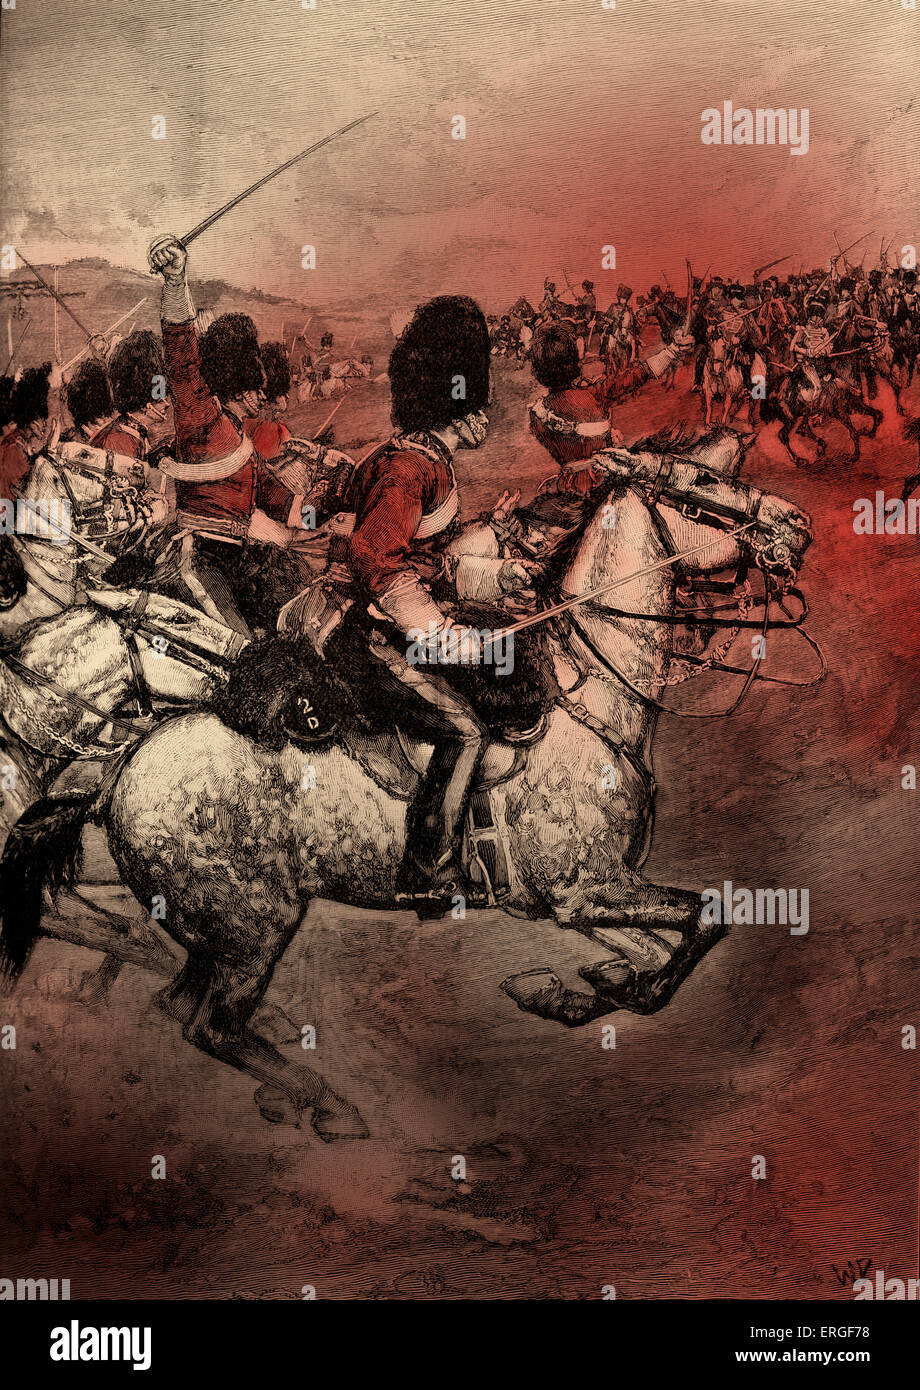 Charge of the Heavy Brigade - during the Crimean War, 1854. Conflict between the Russian Empire and an alliance - Stock Image